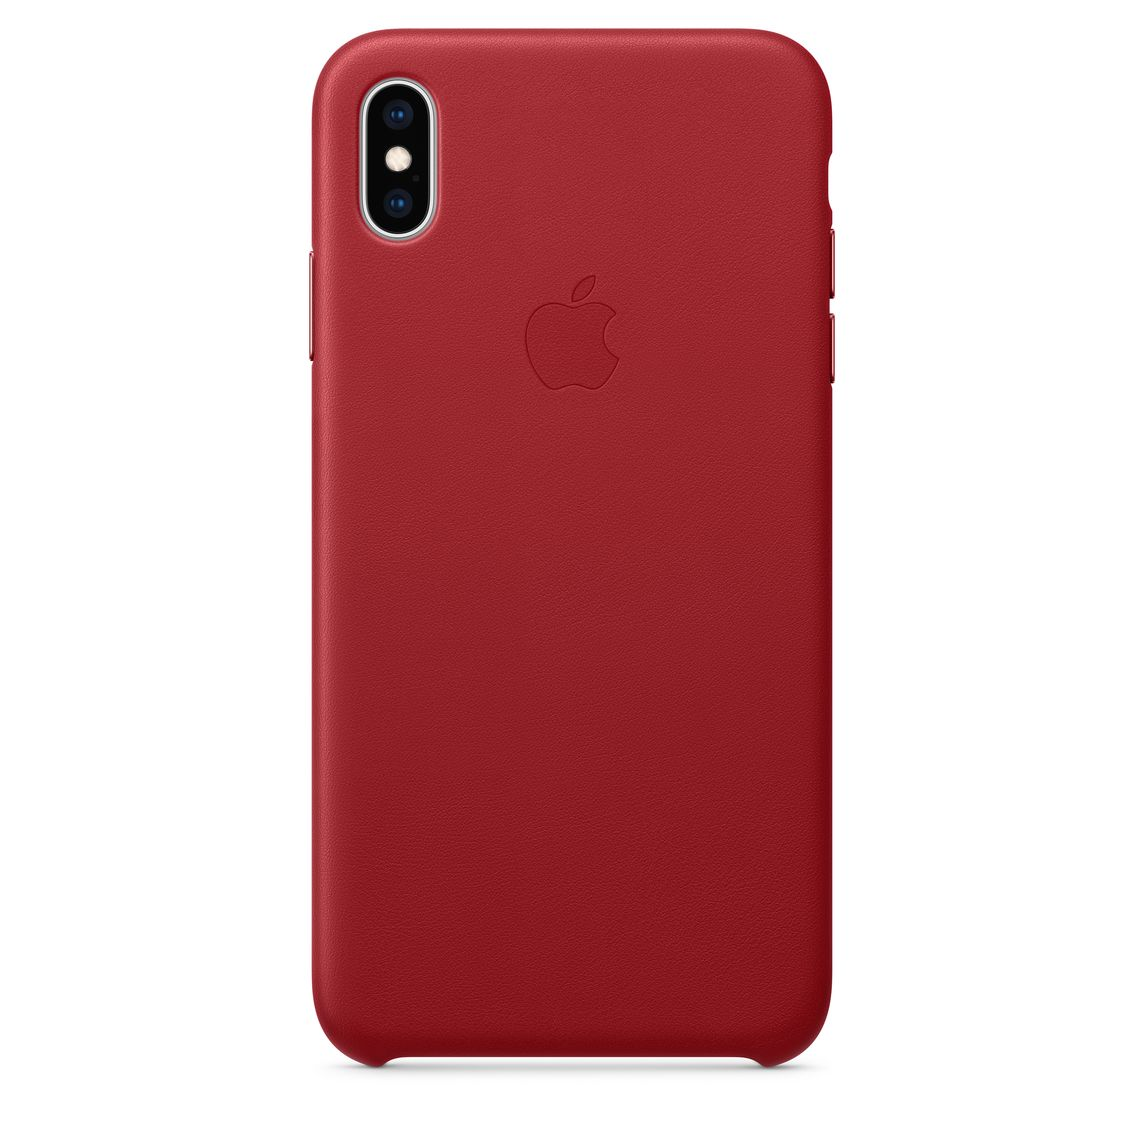 huge discount a42ad ae0c3 iPhone XS Max Leather Case - (PRODUCT)RED